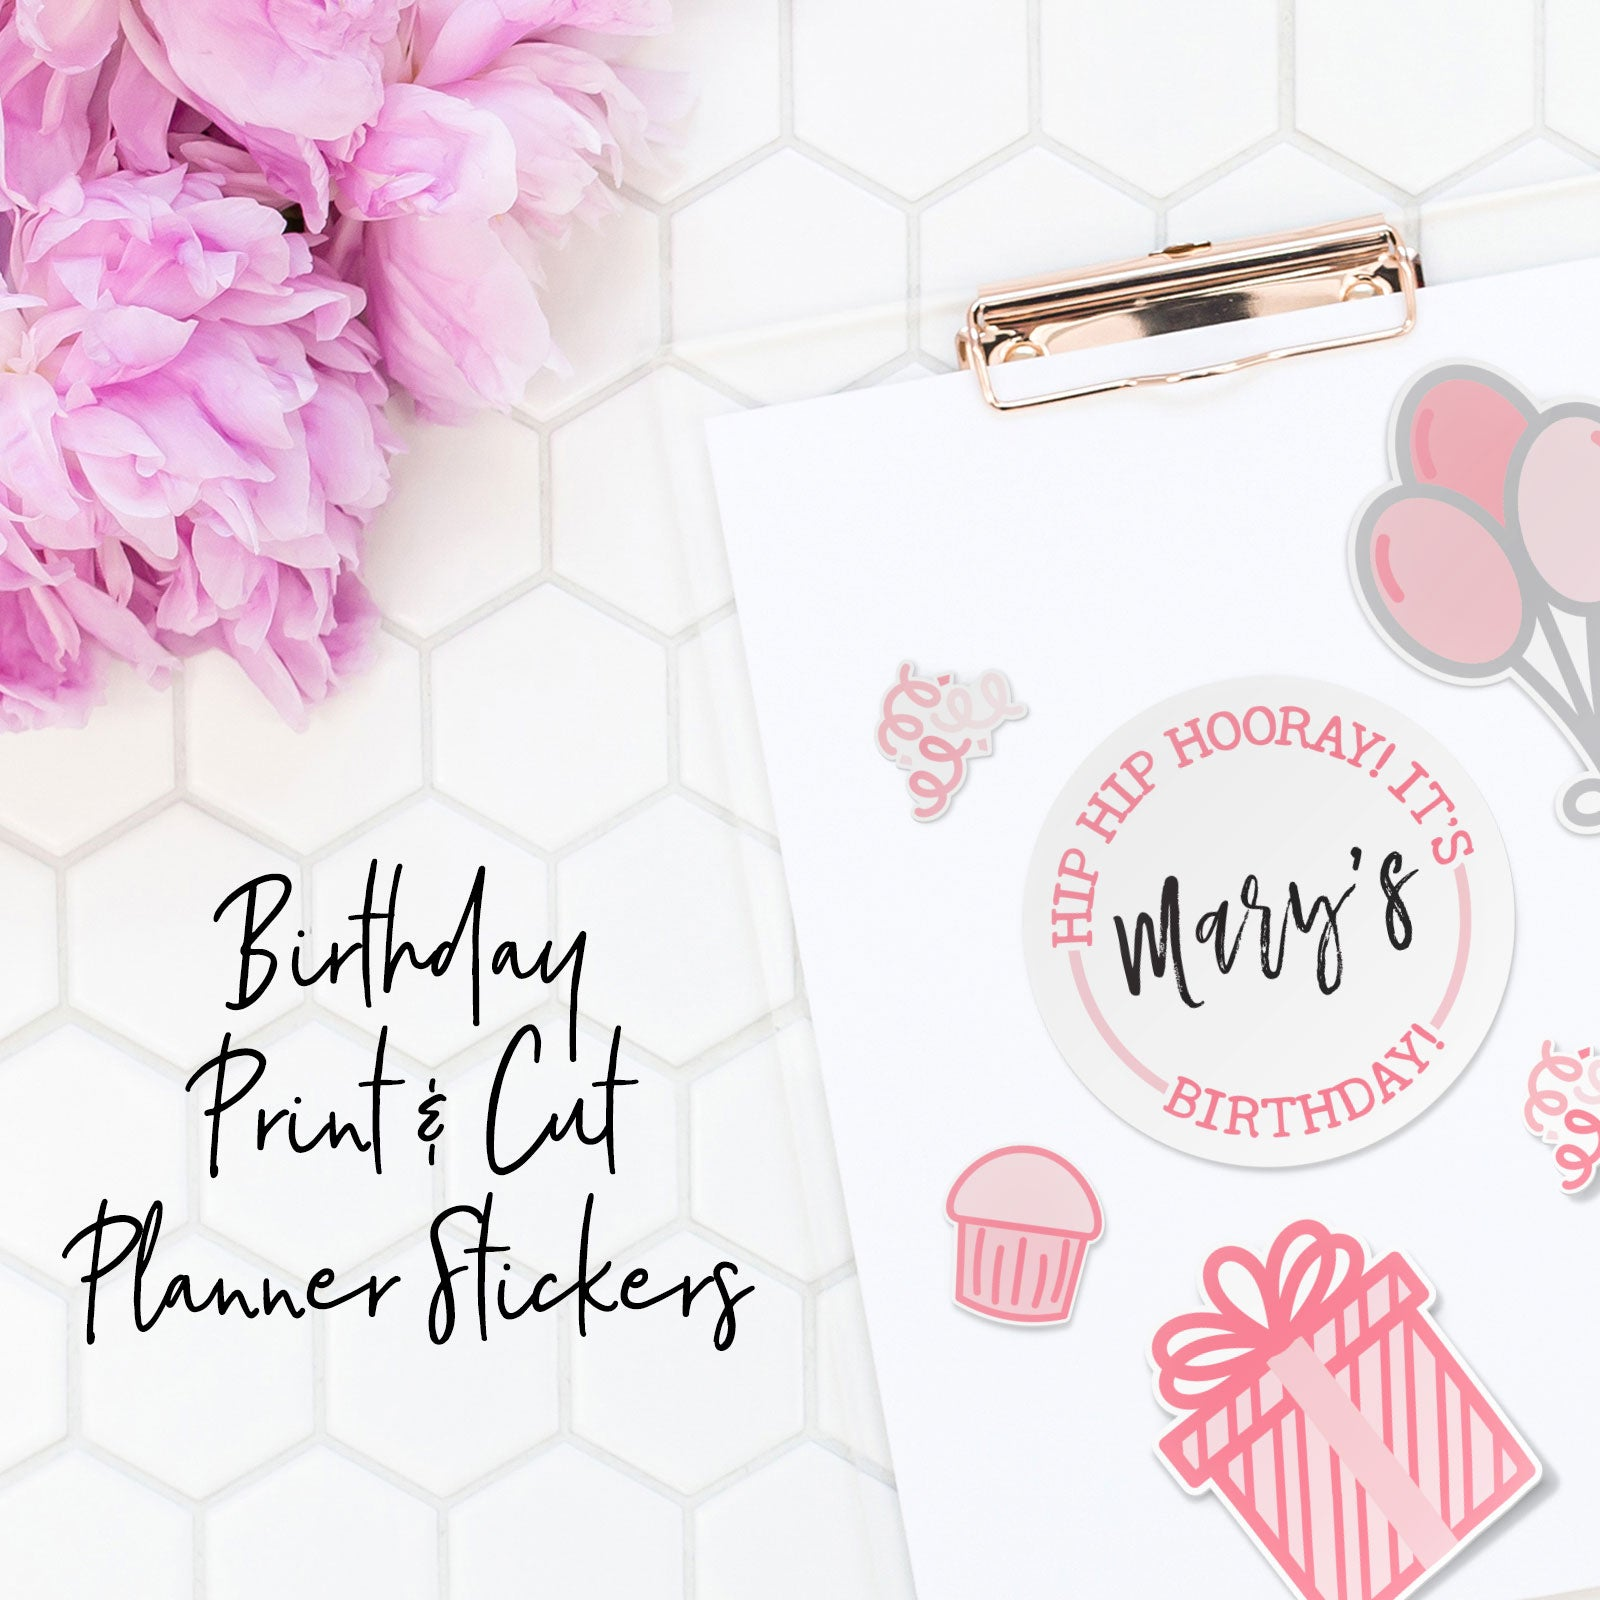 Monthly Freebie | November 2018 Birthday Themed Print and Cut Planner Stickers